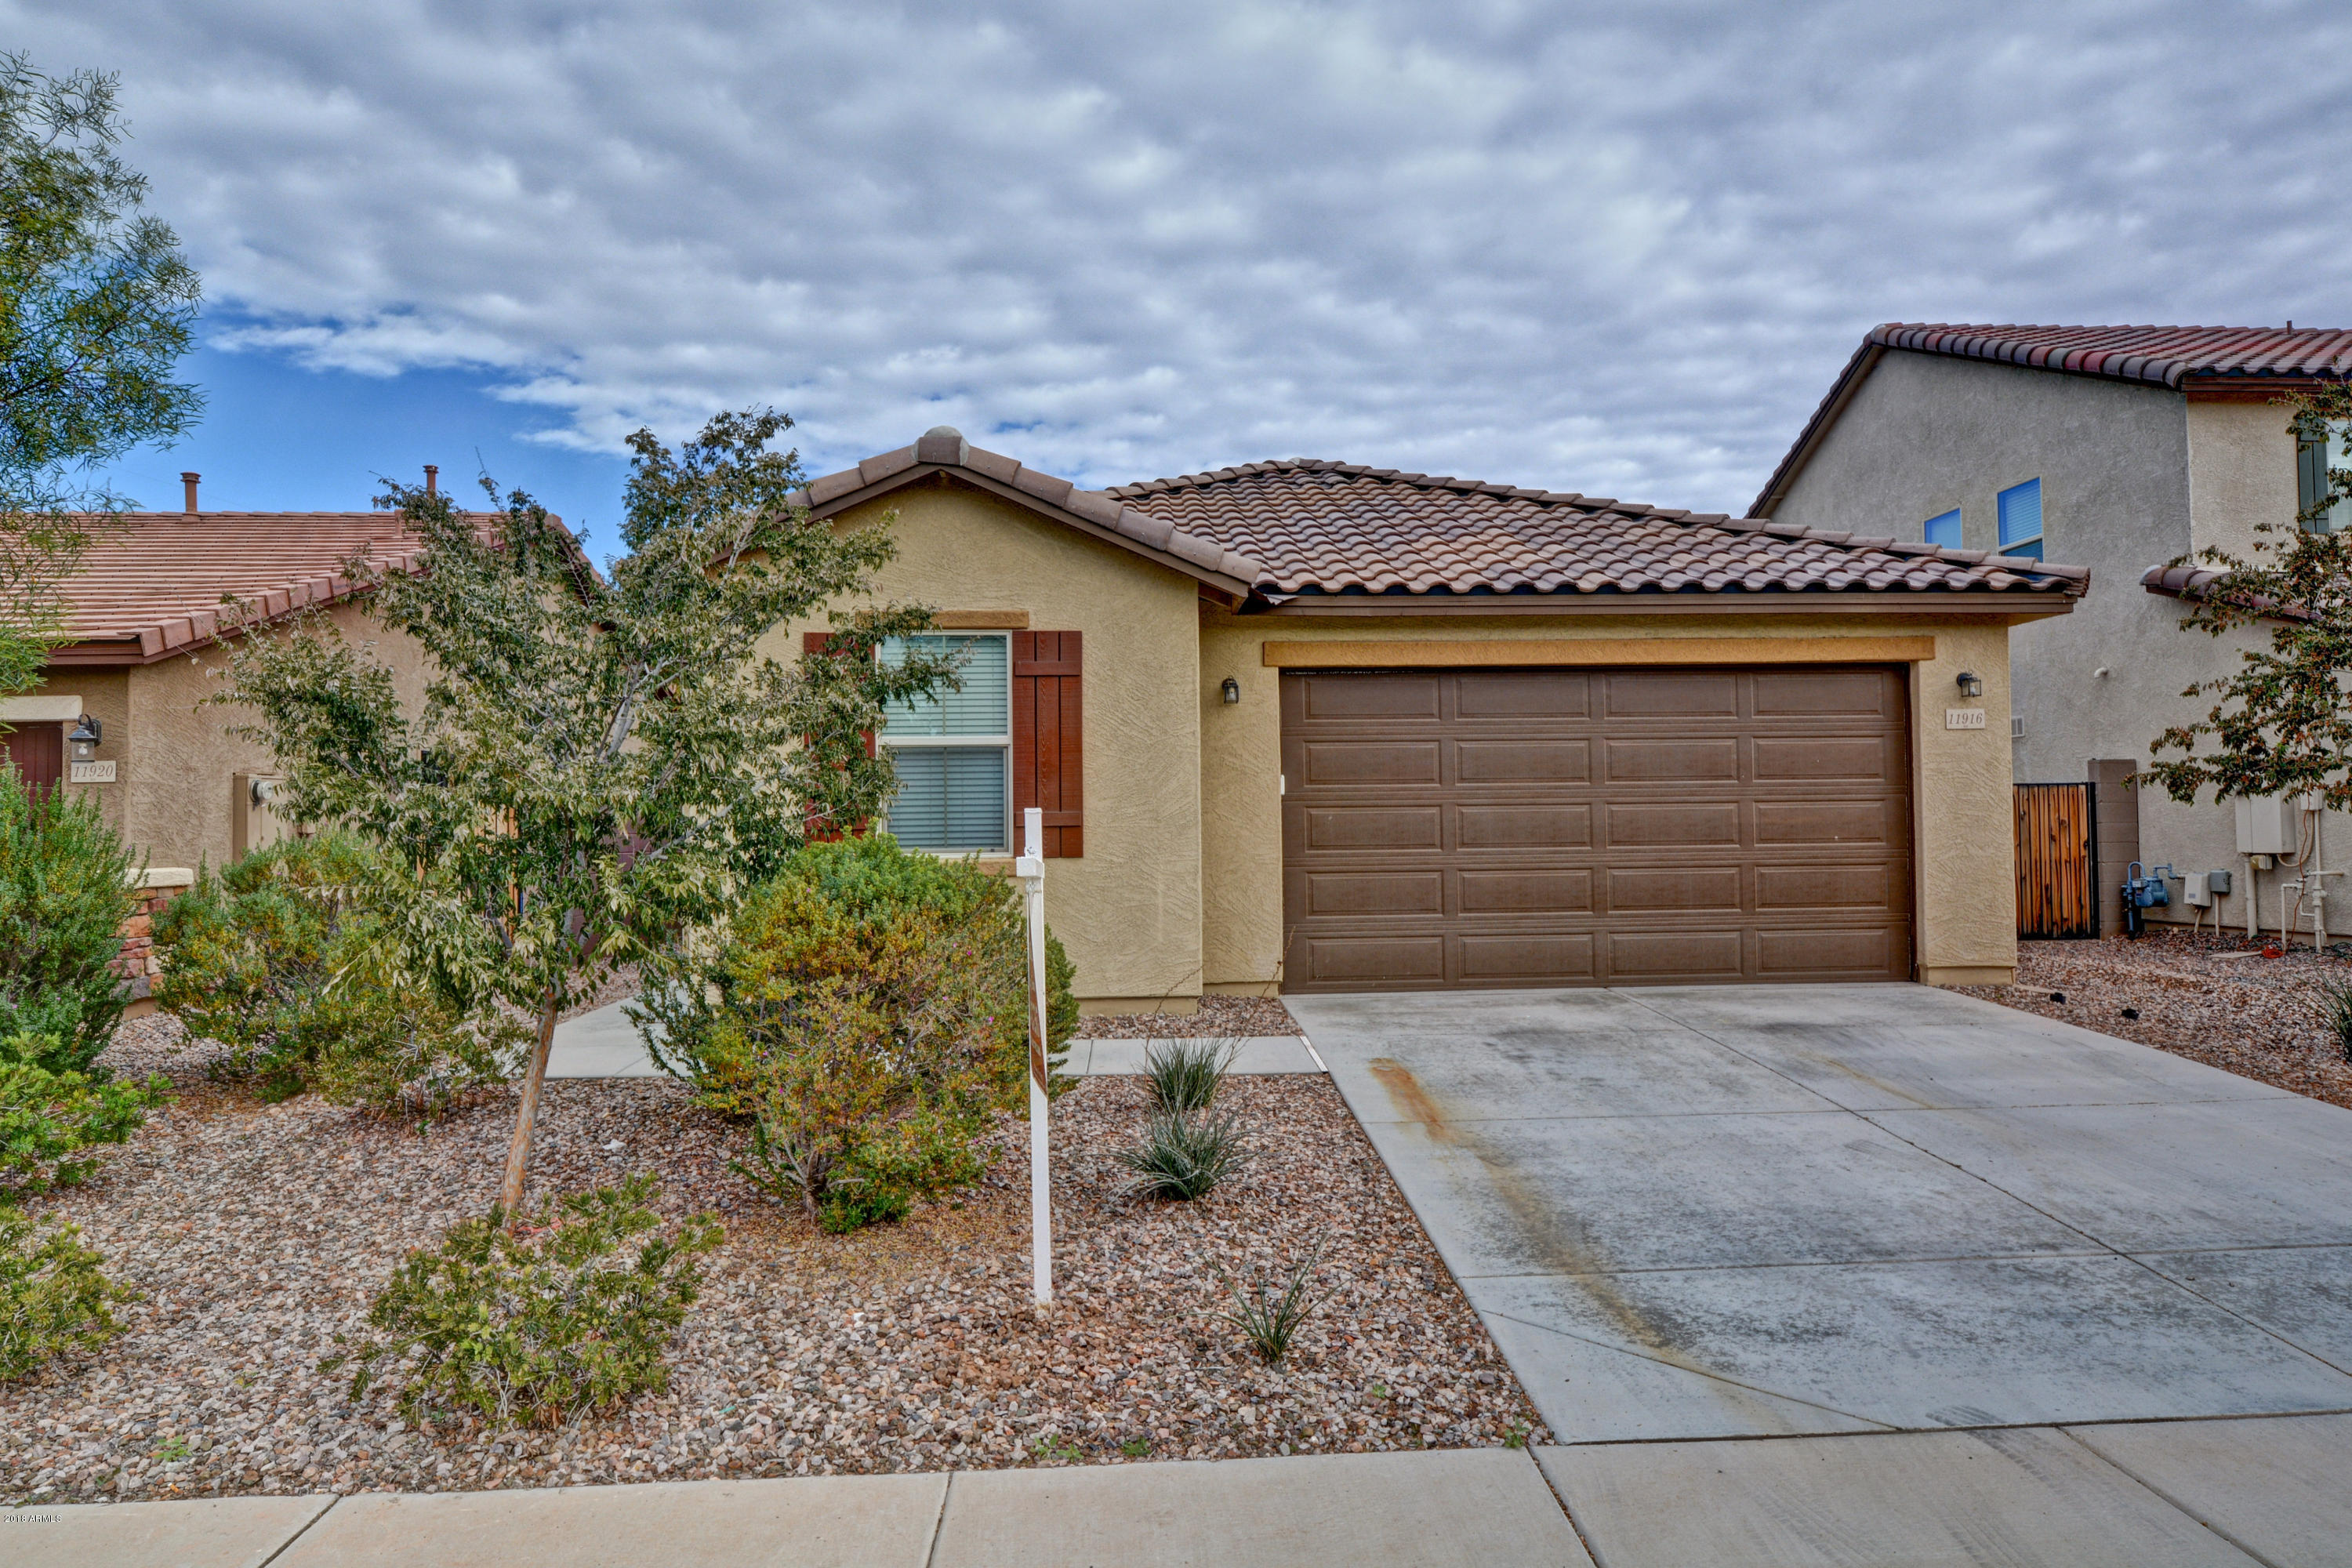 11916 W HONEYSUCKLE Court Peoria, AZ 85383 - MLS #: 5853981